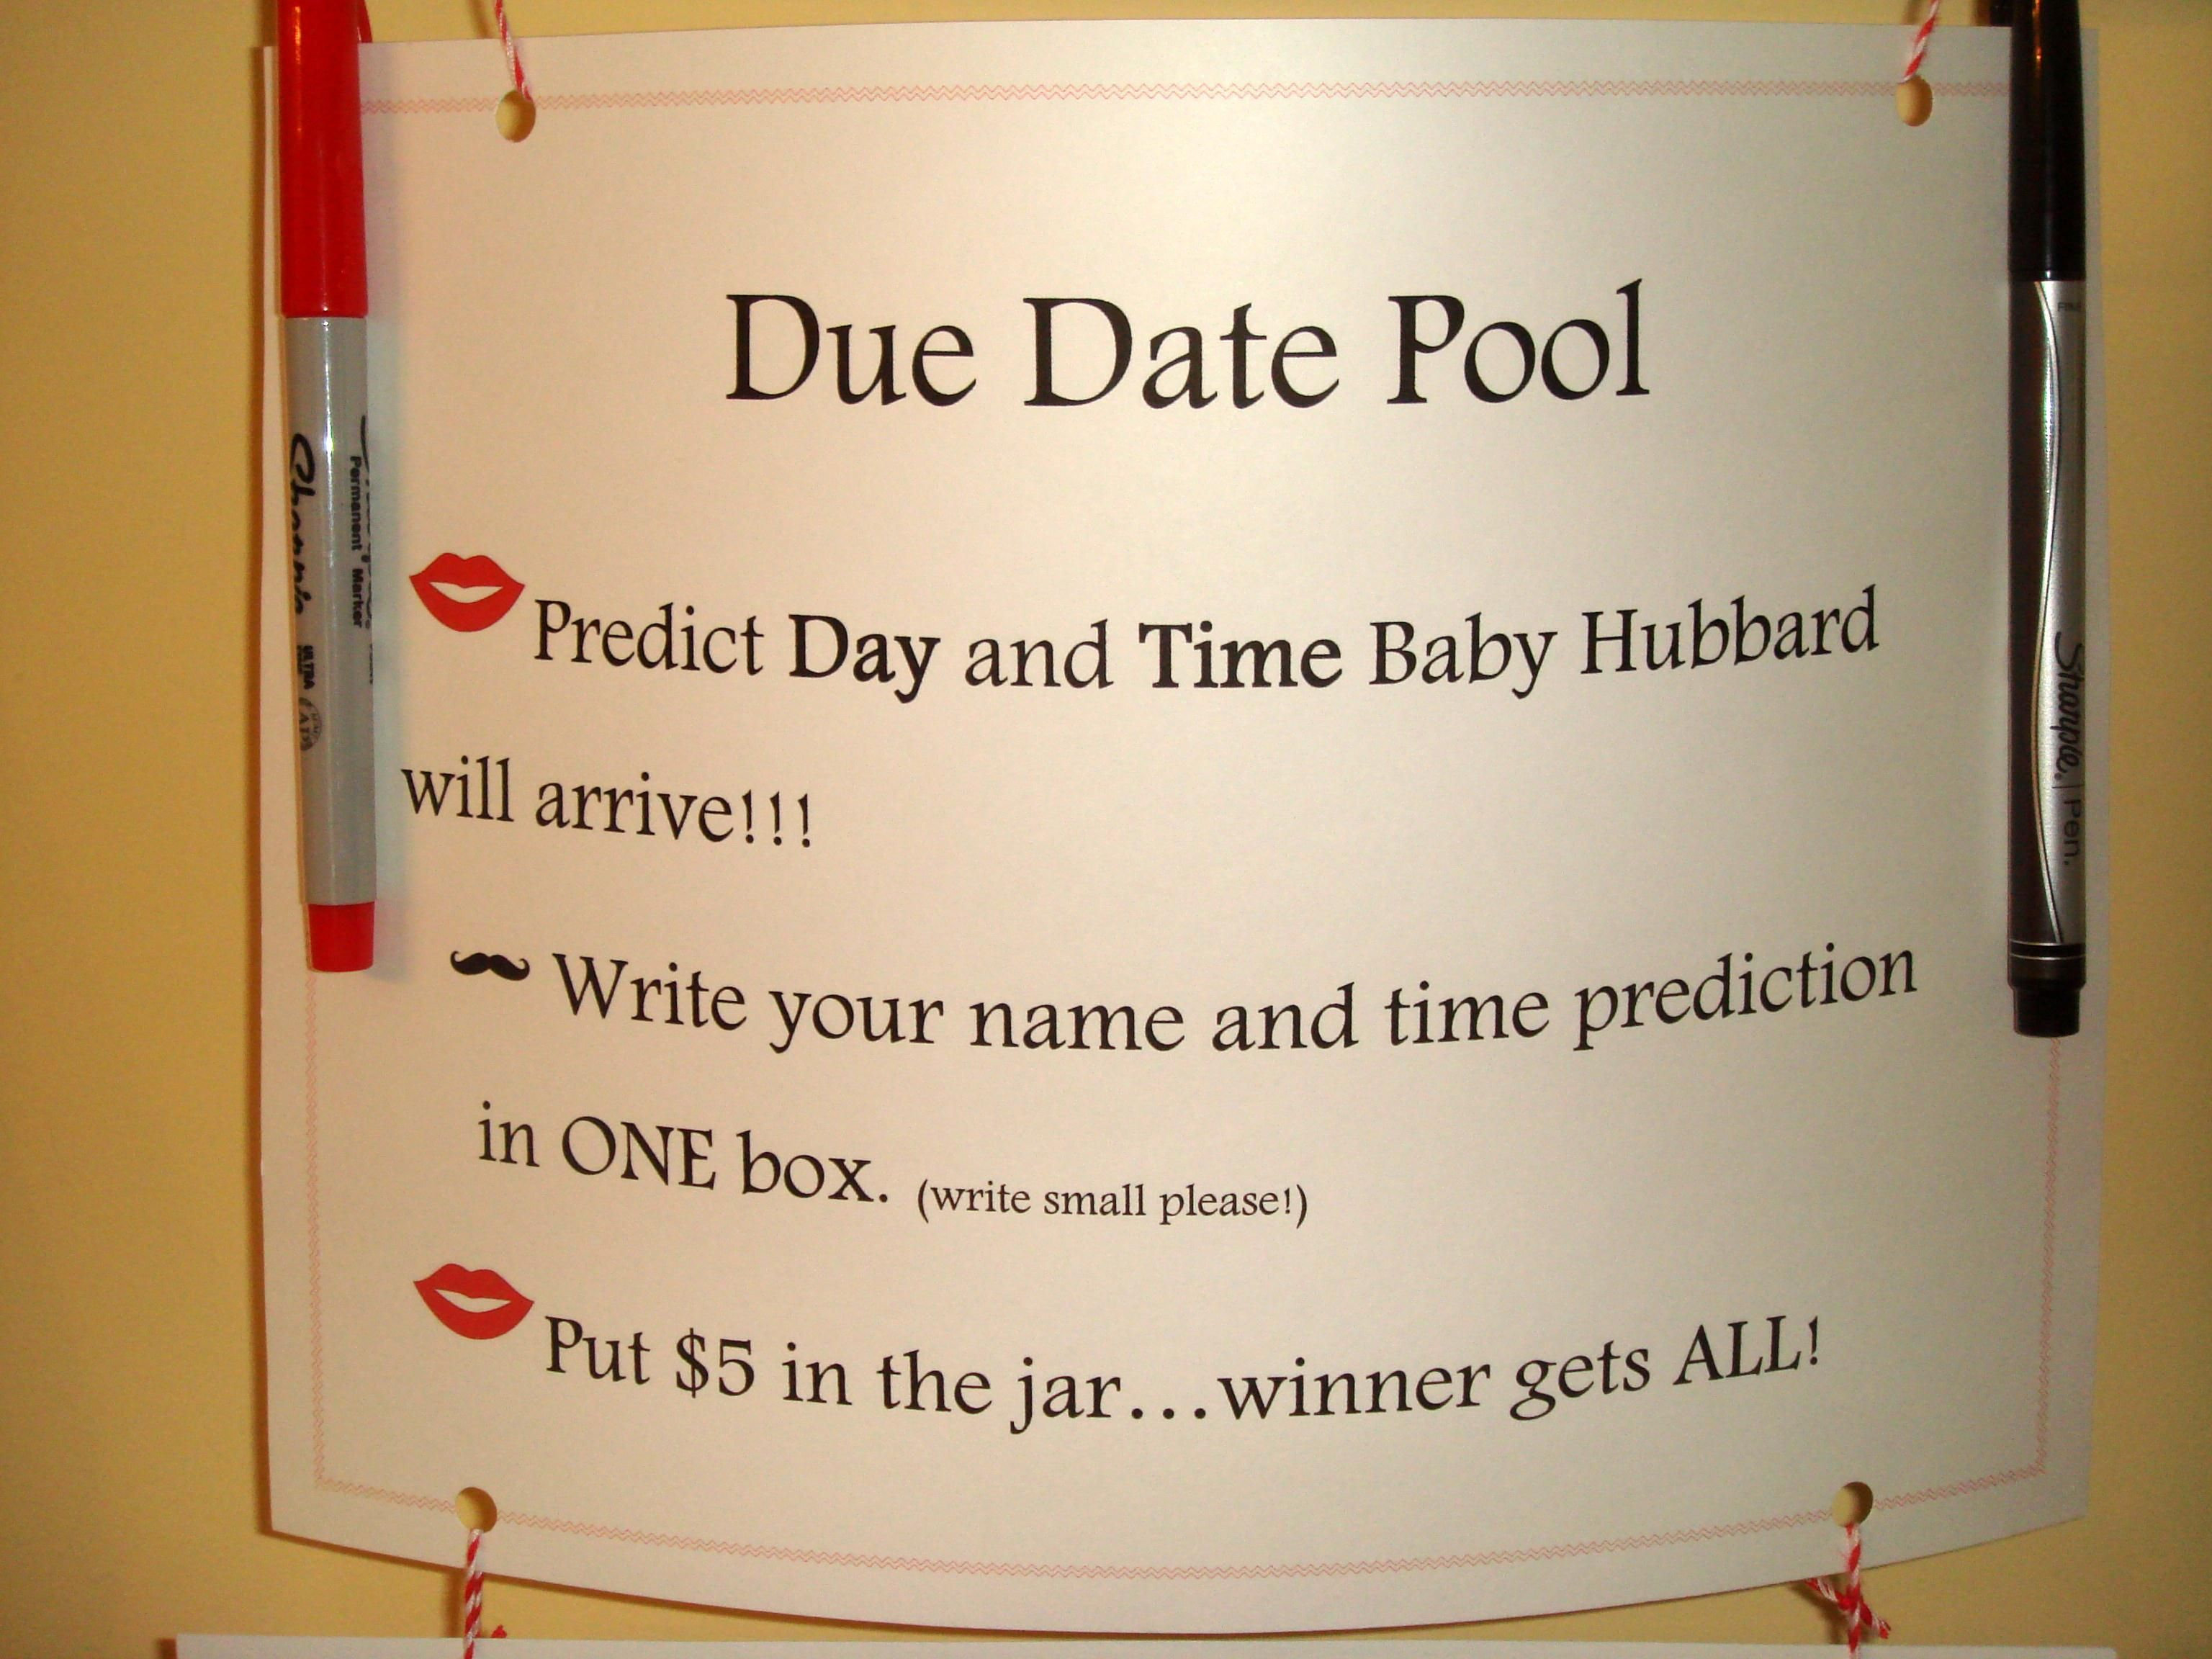 How to Predict Due Date picture